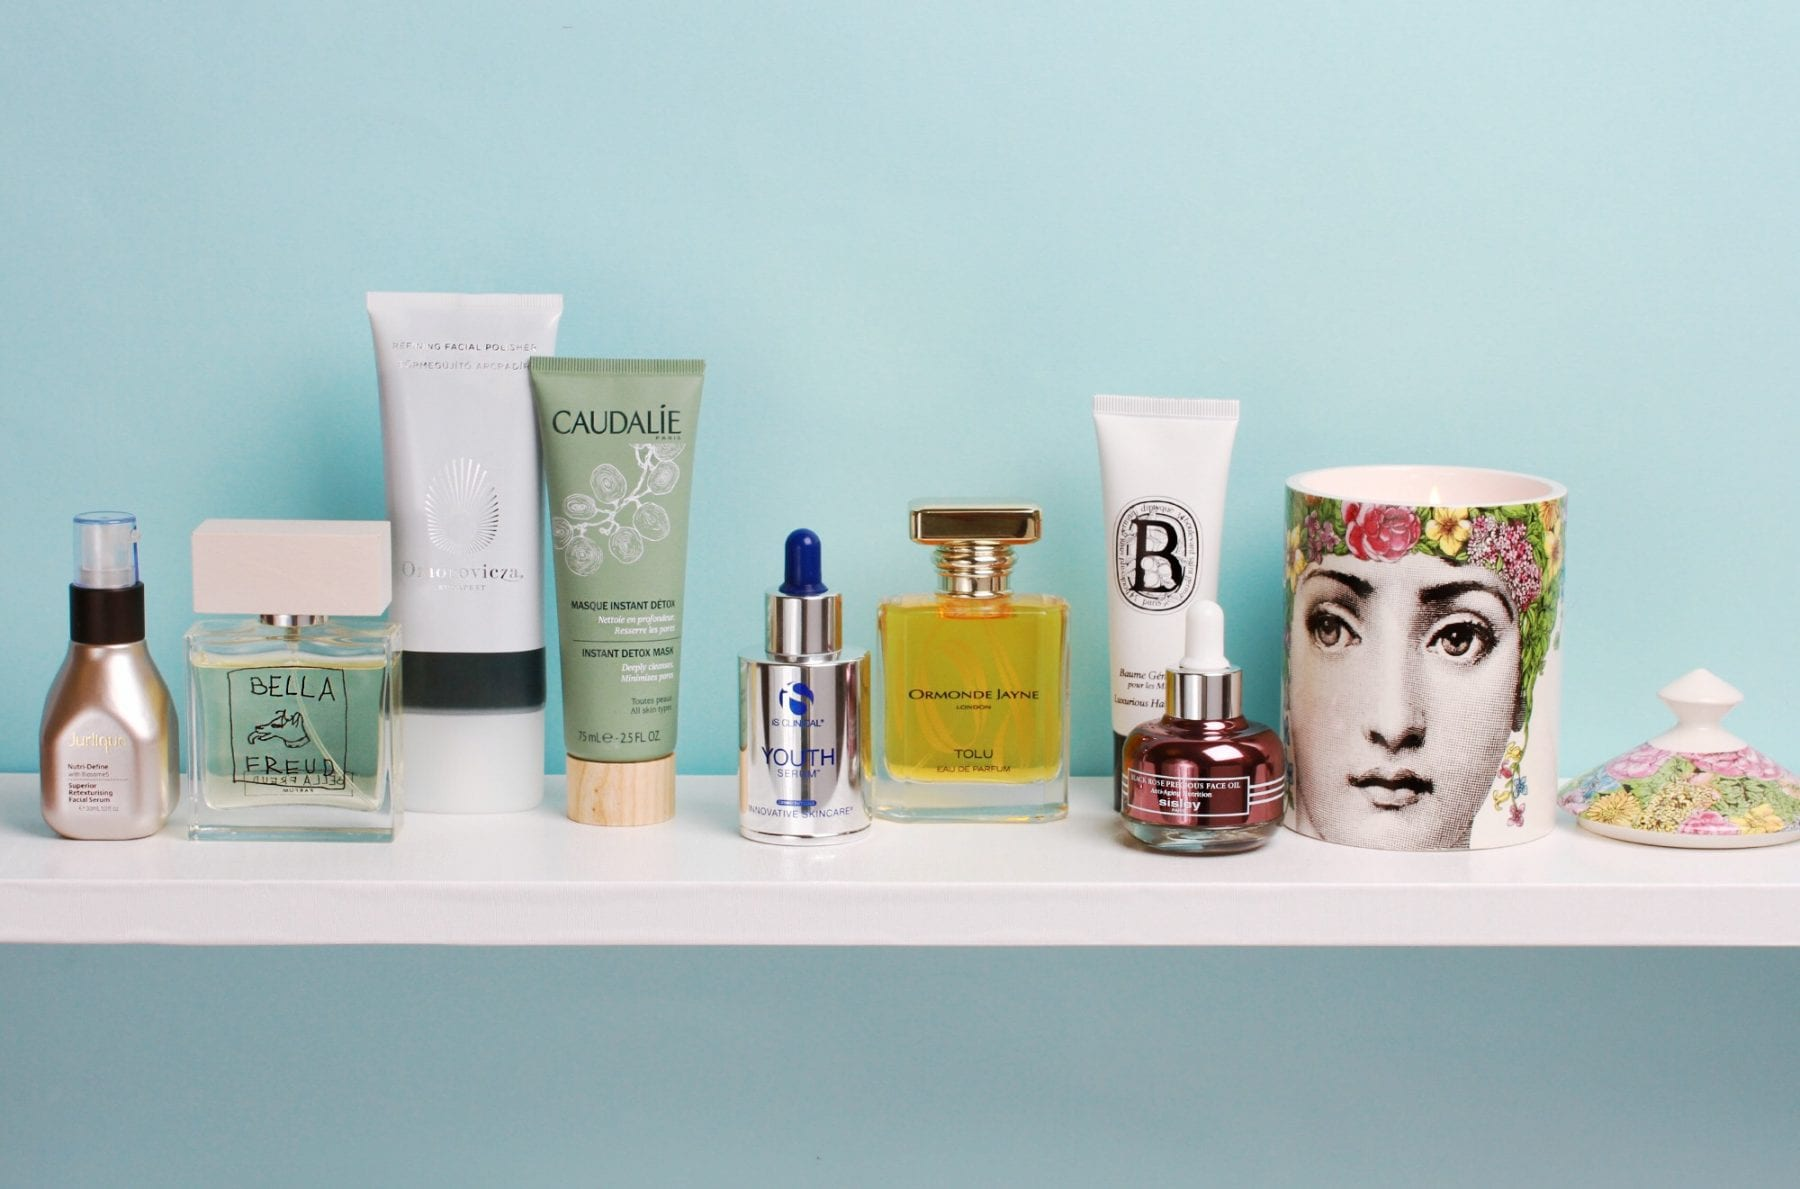 Beauty Shelfie: Emma Day, Blogger and Makeup Artist